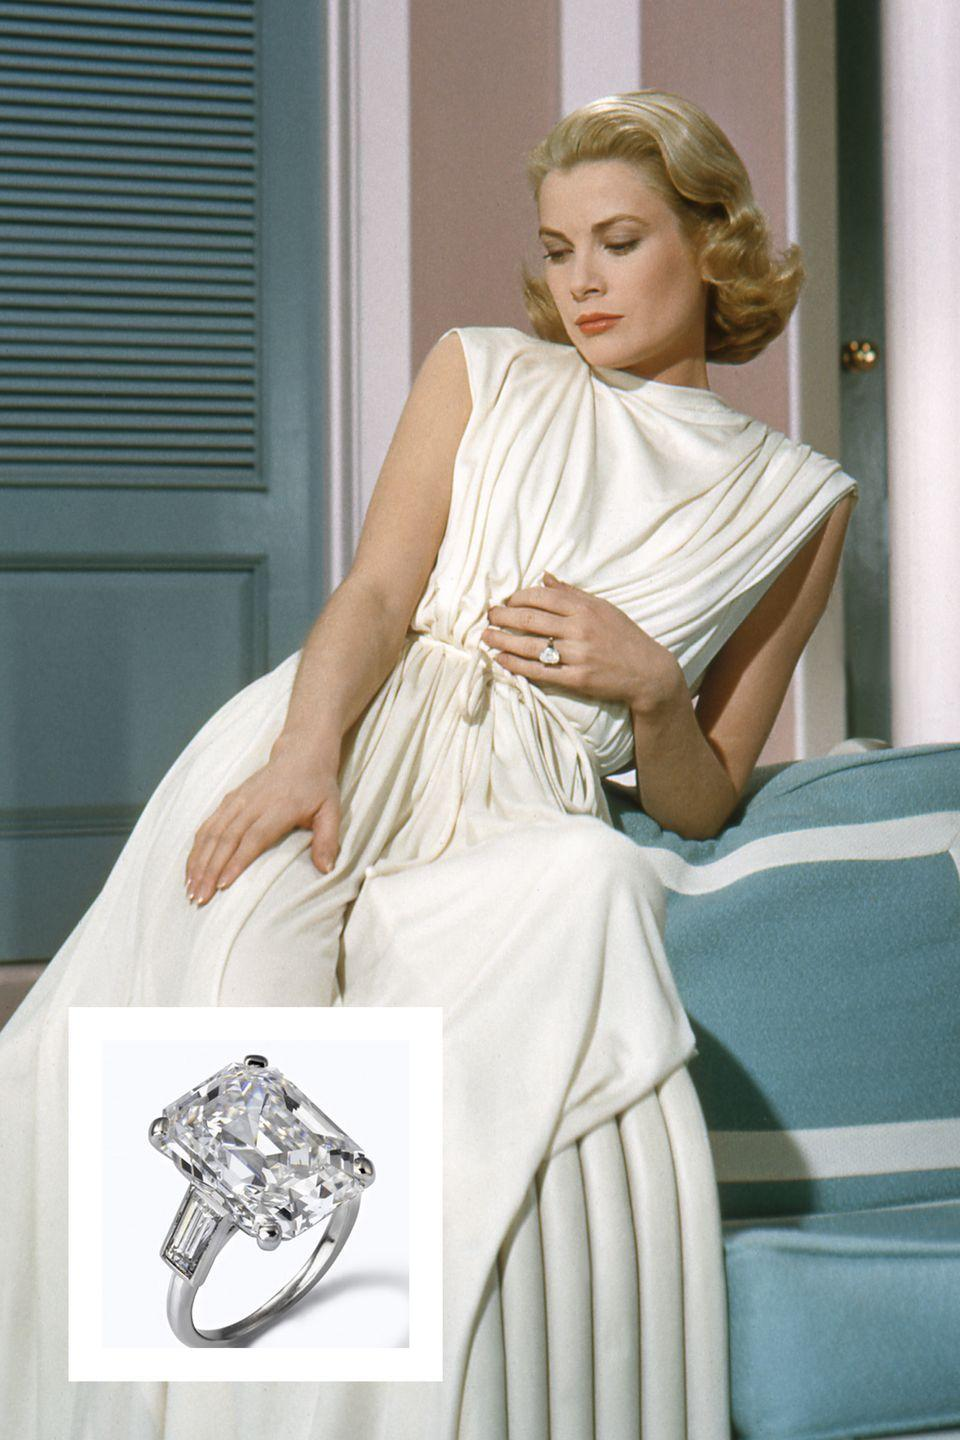 """<p><a href=""""https://www.townandcountrymag.com/style/jewelry-and-watches/g13060157/famous-royal-engagement-rings/?slide=5"""" rel=""""nofollow noopener"""" target=""""_blank"""" data-ylk=""""slk:Prince Rainier III of Monaco proposed to Kelly"""" class=""""link rapid-noclick-resp"""">Prince Rainier III of Monaco proposed to Kelly</a> with a gorgeous 10.47 carat emerald-cut diamond by Cartier. The ring featured two baguette diamonds on each side. <a href=""""https://www.townandcountrymag.com/society/tradition/a12787551/grace-kelly-wedding/"""" rel=""""nofollow noopener"""" target=""""_blank"""" data-ylk=""""slk:The couple wed in a fairytale wedding in 1956"""" class=""""link rapid-noclick-resp"""">The couple wed in a fairytale wedding in 1956</a>, and the stunning ring is estimated to be worth $4.06 million, <a href=""""http://www.whowhatwear.com/celebrity-engagement-rings-expensive/slide15"""" rel=""""nofollow noopener"""" target=""""_blank"""" data-ylk=""""slk:Who What Wear reports."""" class=""""link rapid-noclick-resp""""><em>Who What Wear</em> reports.</a></p>"""